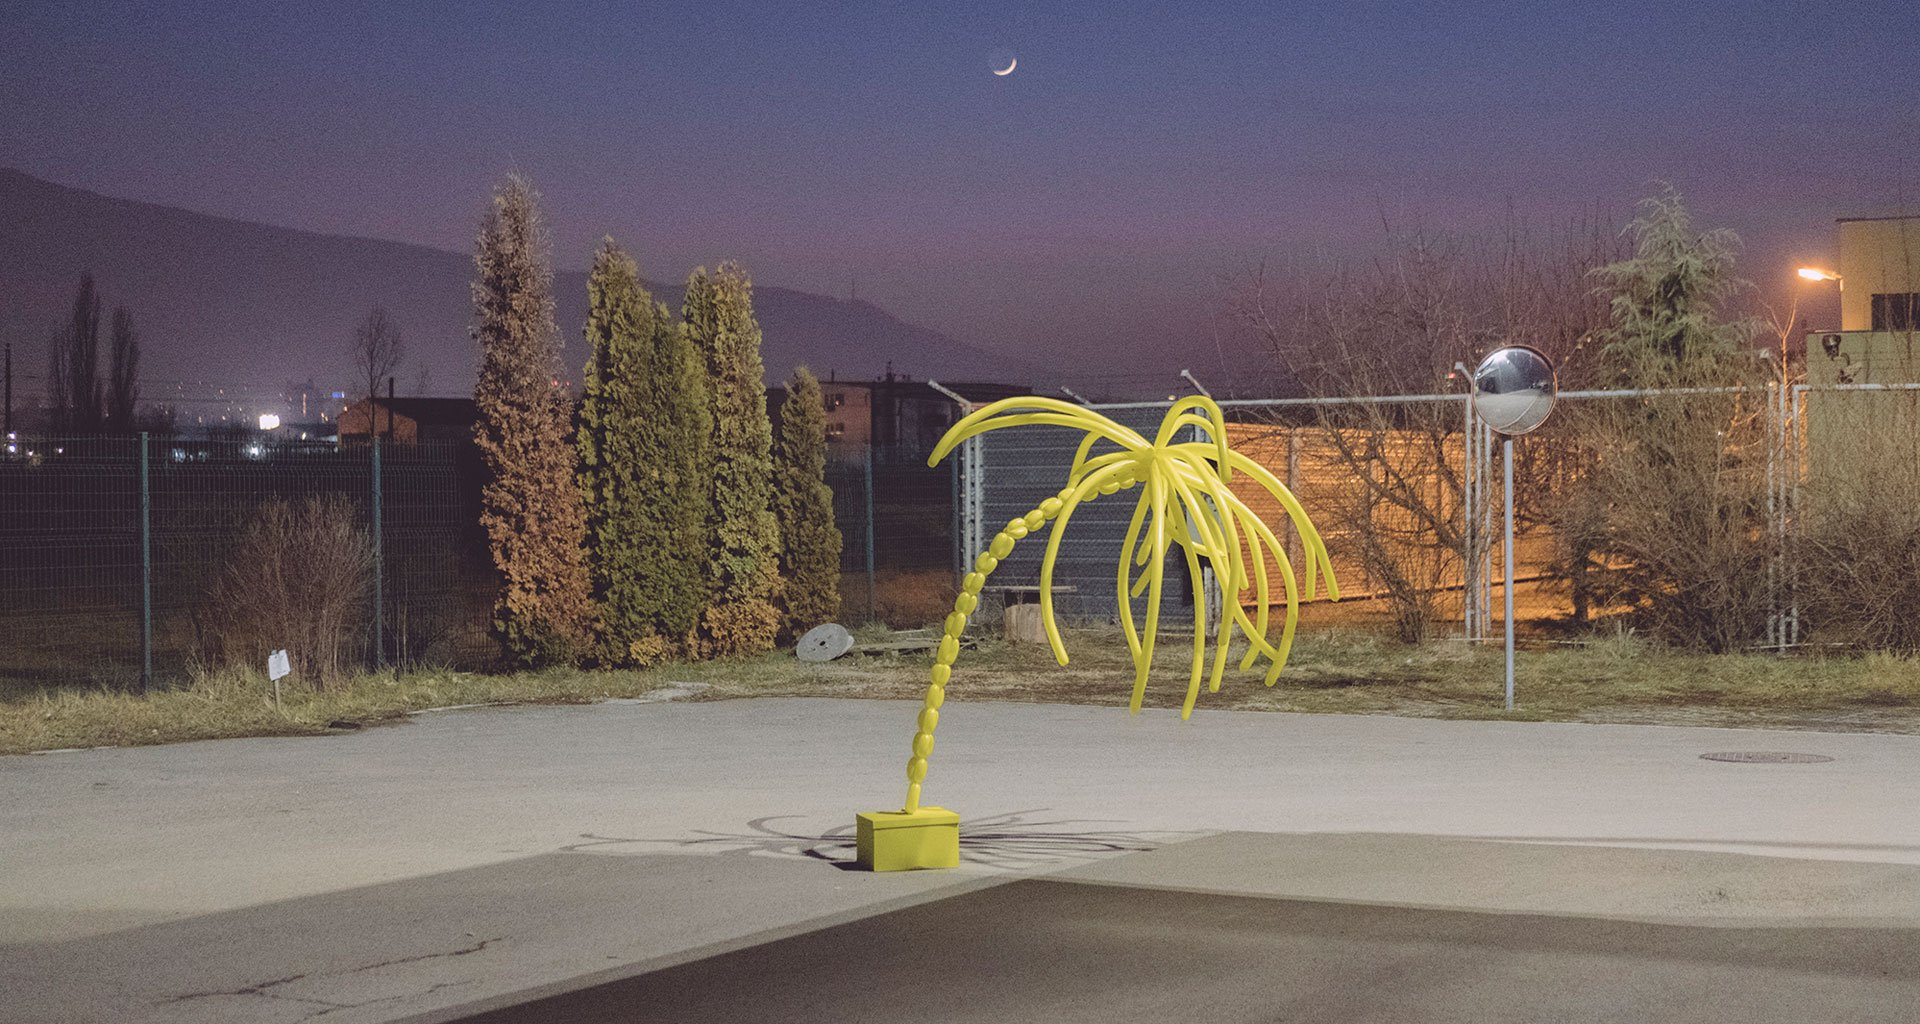 In a deserted Sofia carpark, a deflated palm tree becomes strangely relatable